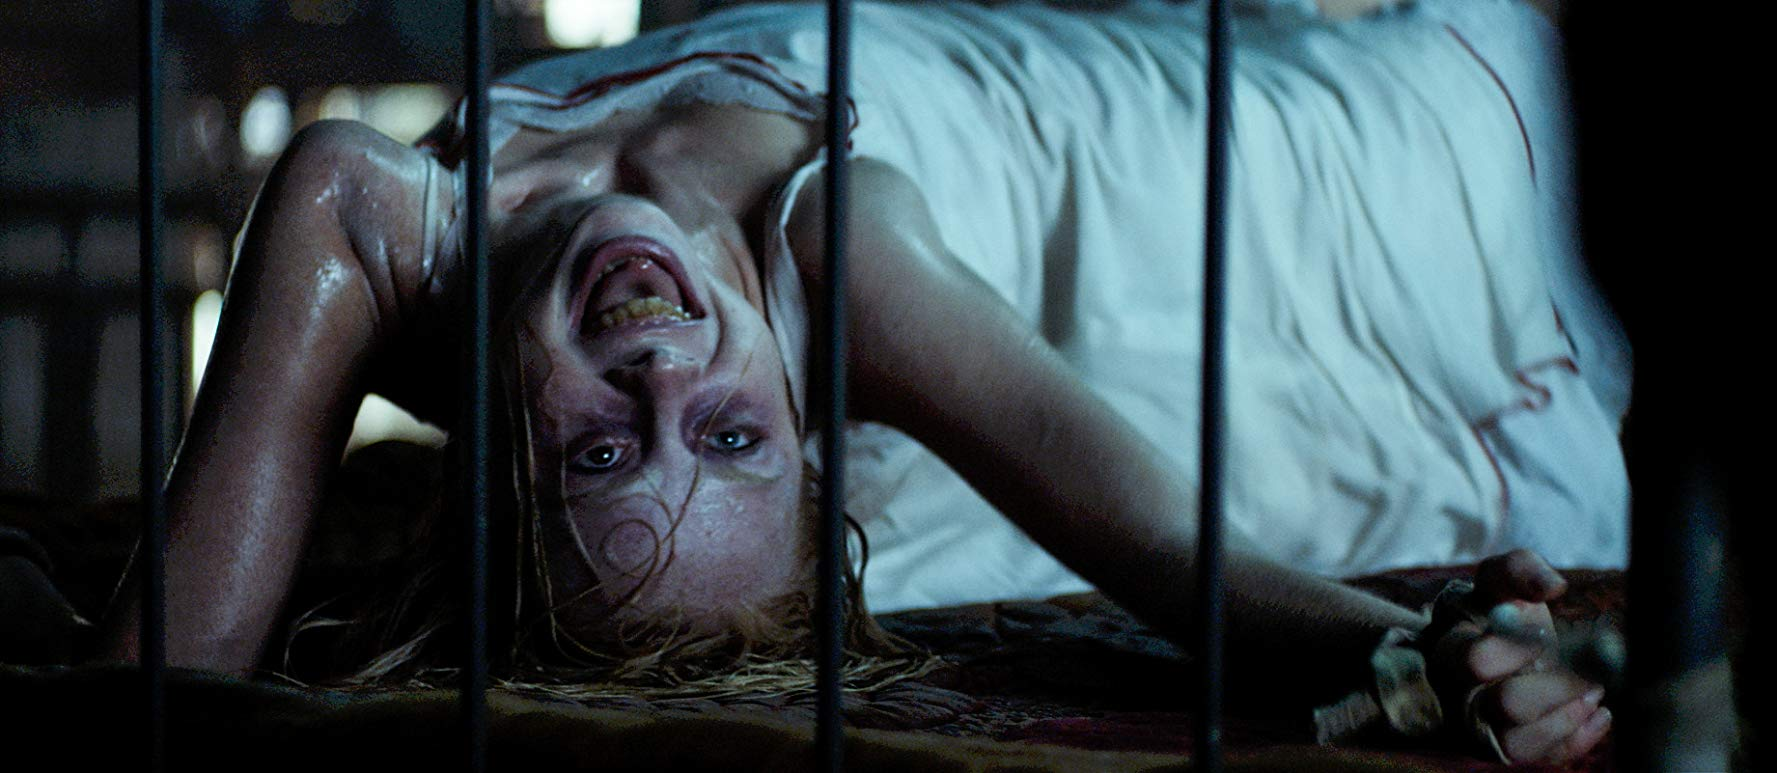 Blu-ray/DVD Review: THE POSSESSION OF HANNAH GRACE (2018)